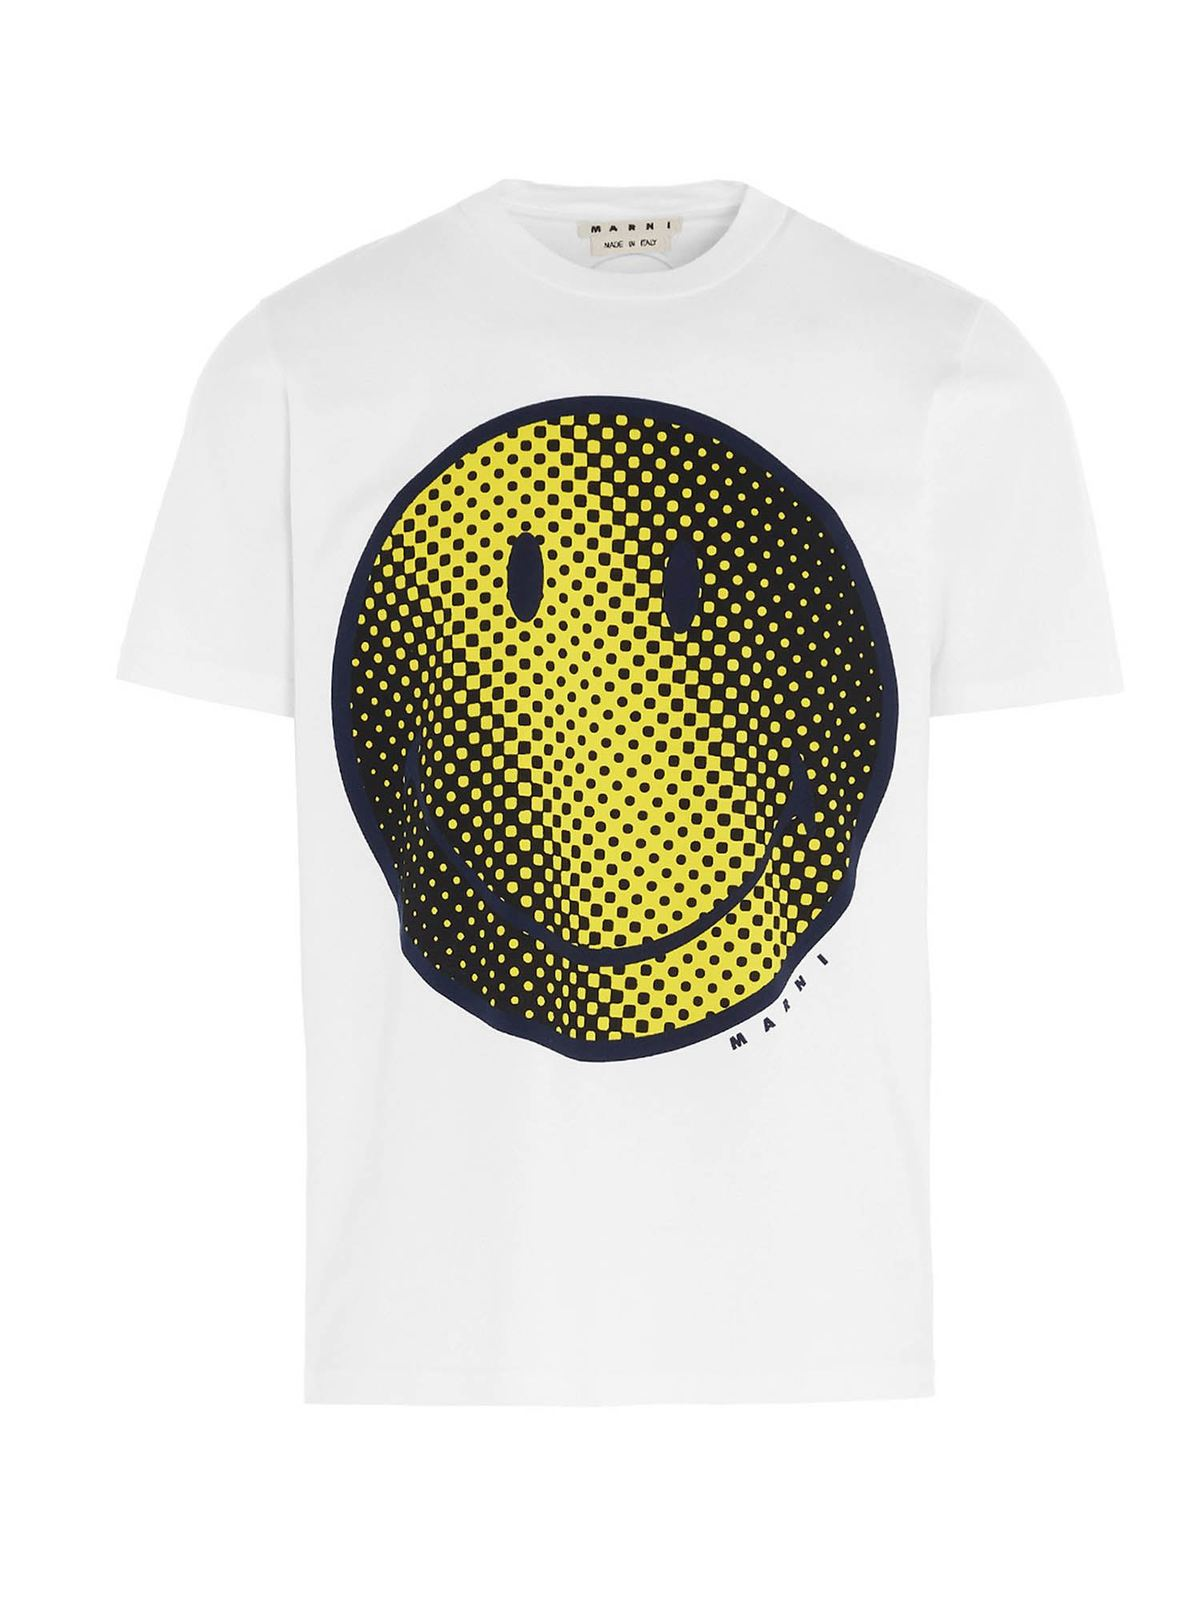 MARNI SMILEY T-SHIRT IN WHITE